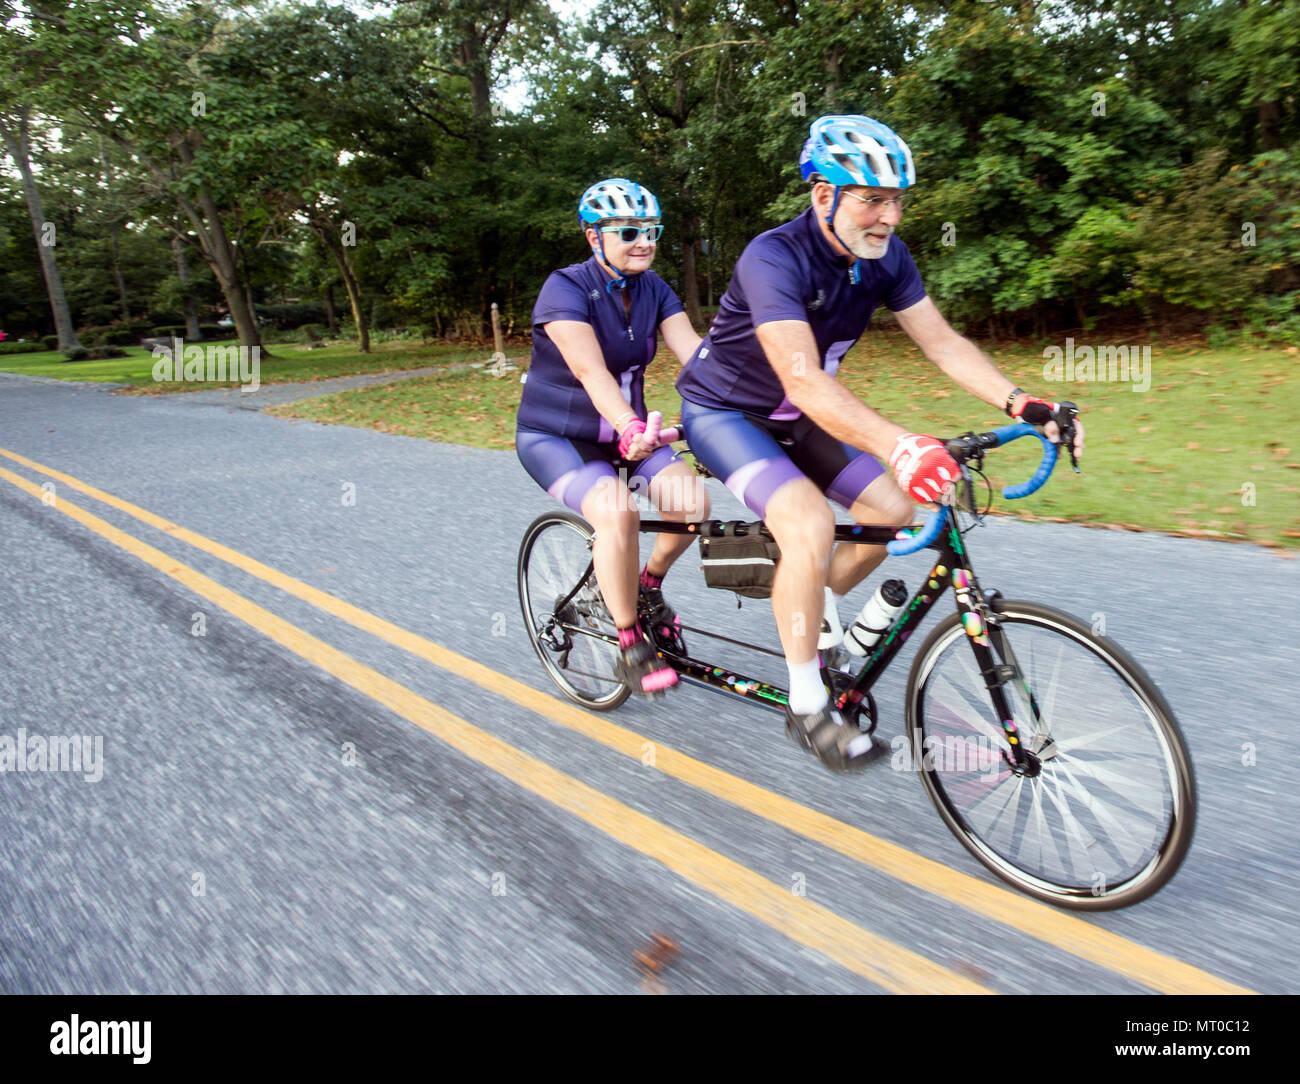 Married couple riding a tandem bicycle - Stock Image